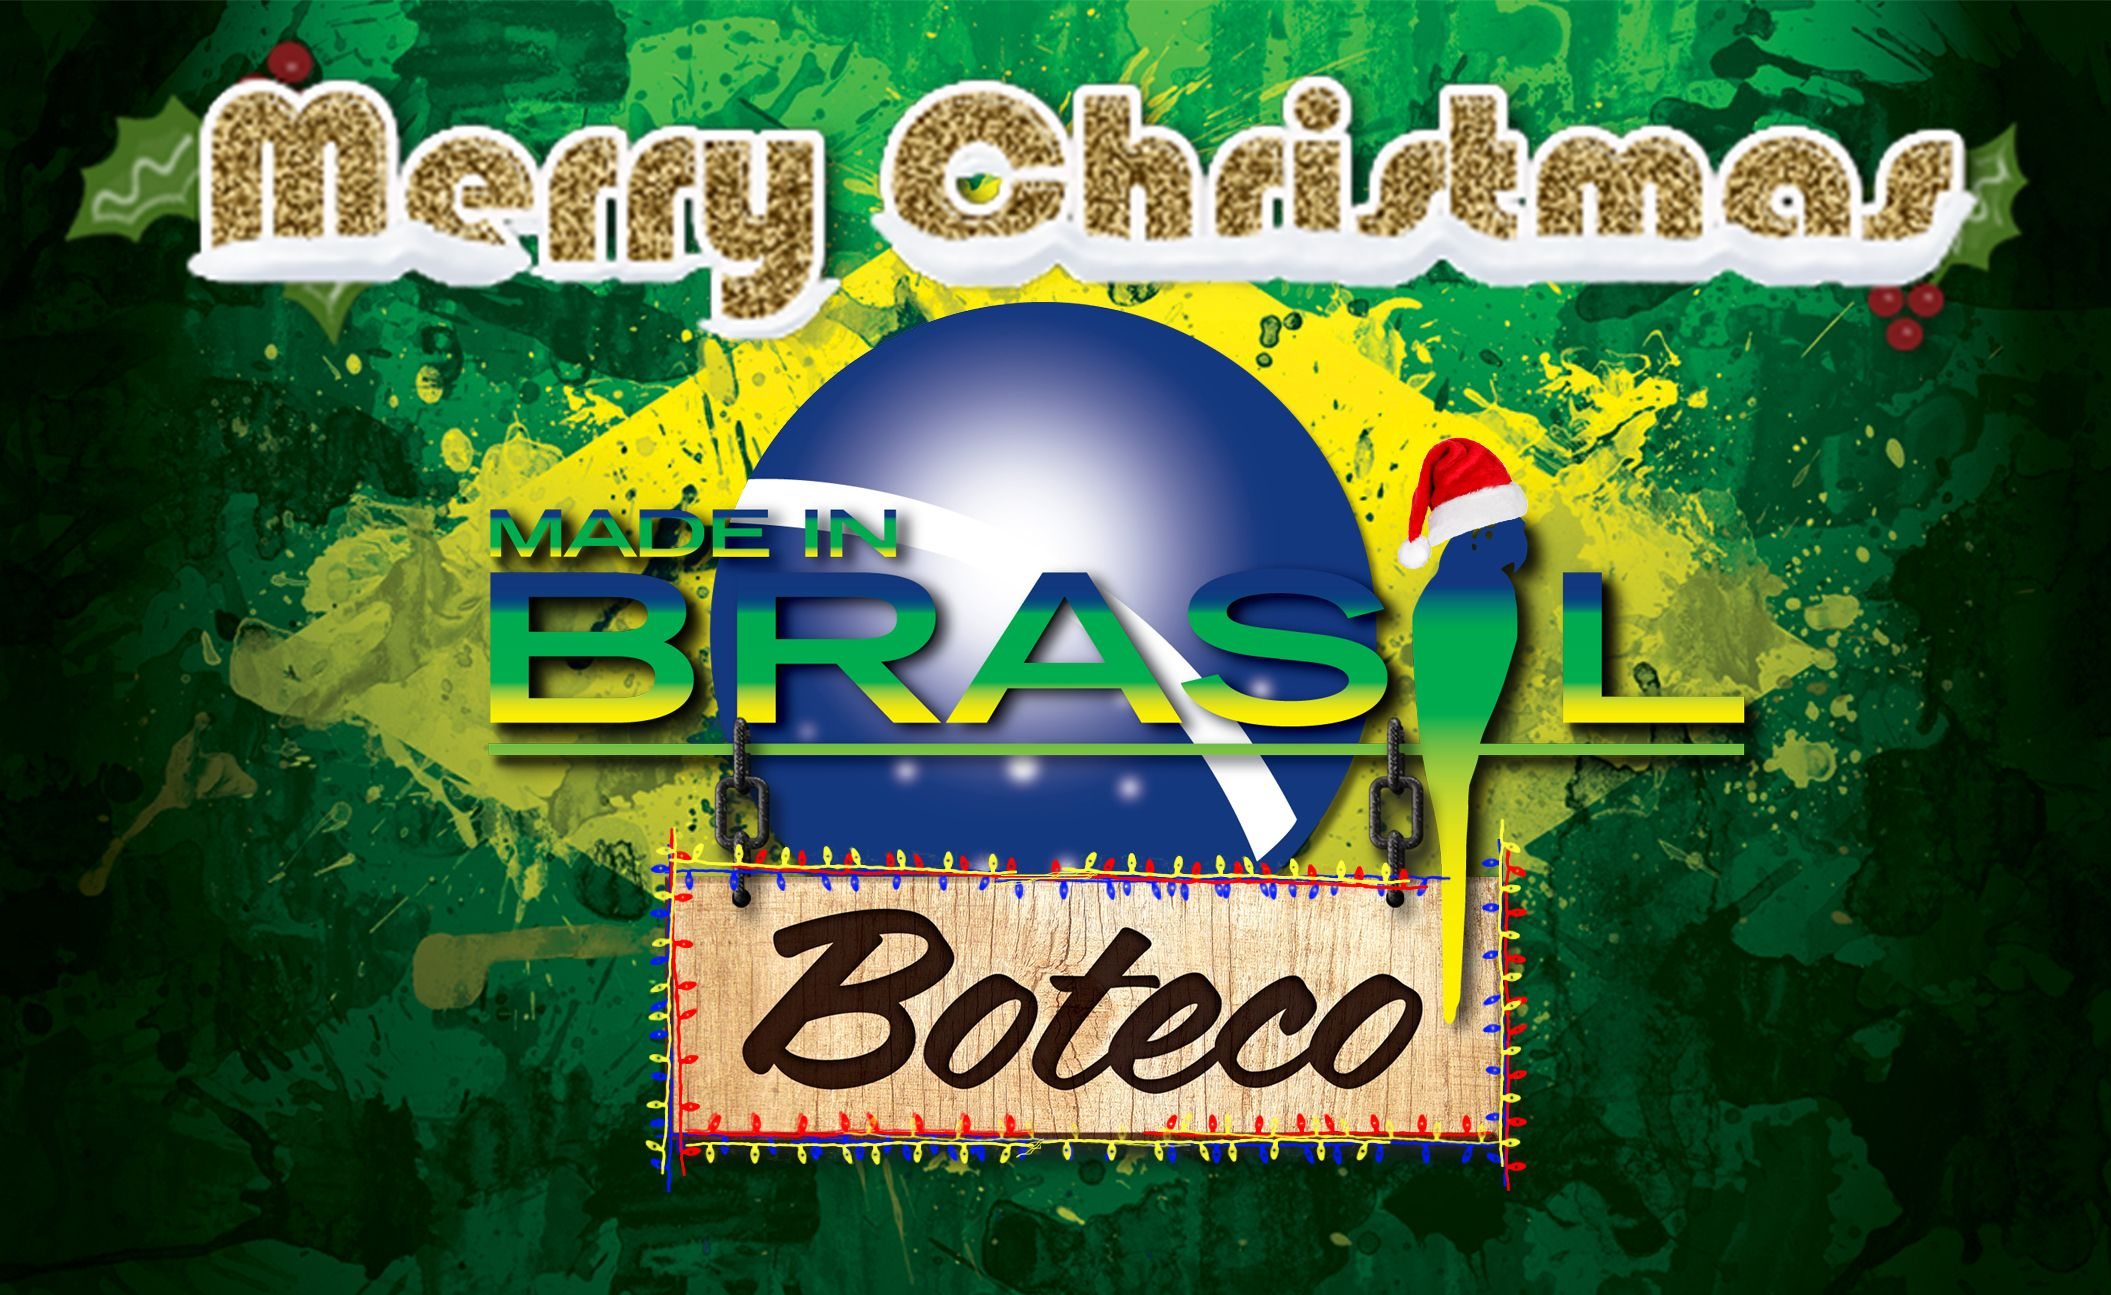 Dear friends, We wish you a lovely Christmas! May this joyful season meet you and your family with love, health and happiness. Feliz Natal!  Made In Brasil Boteco